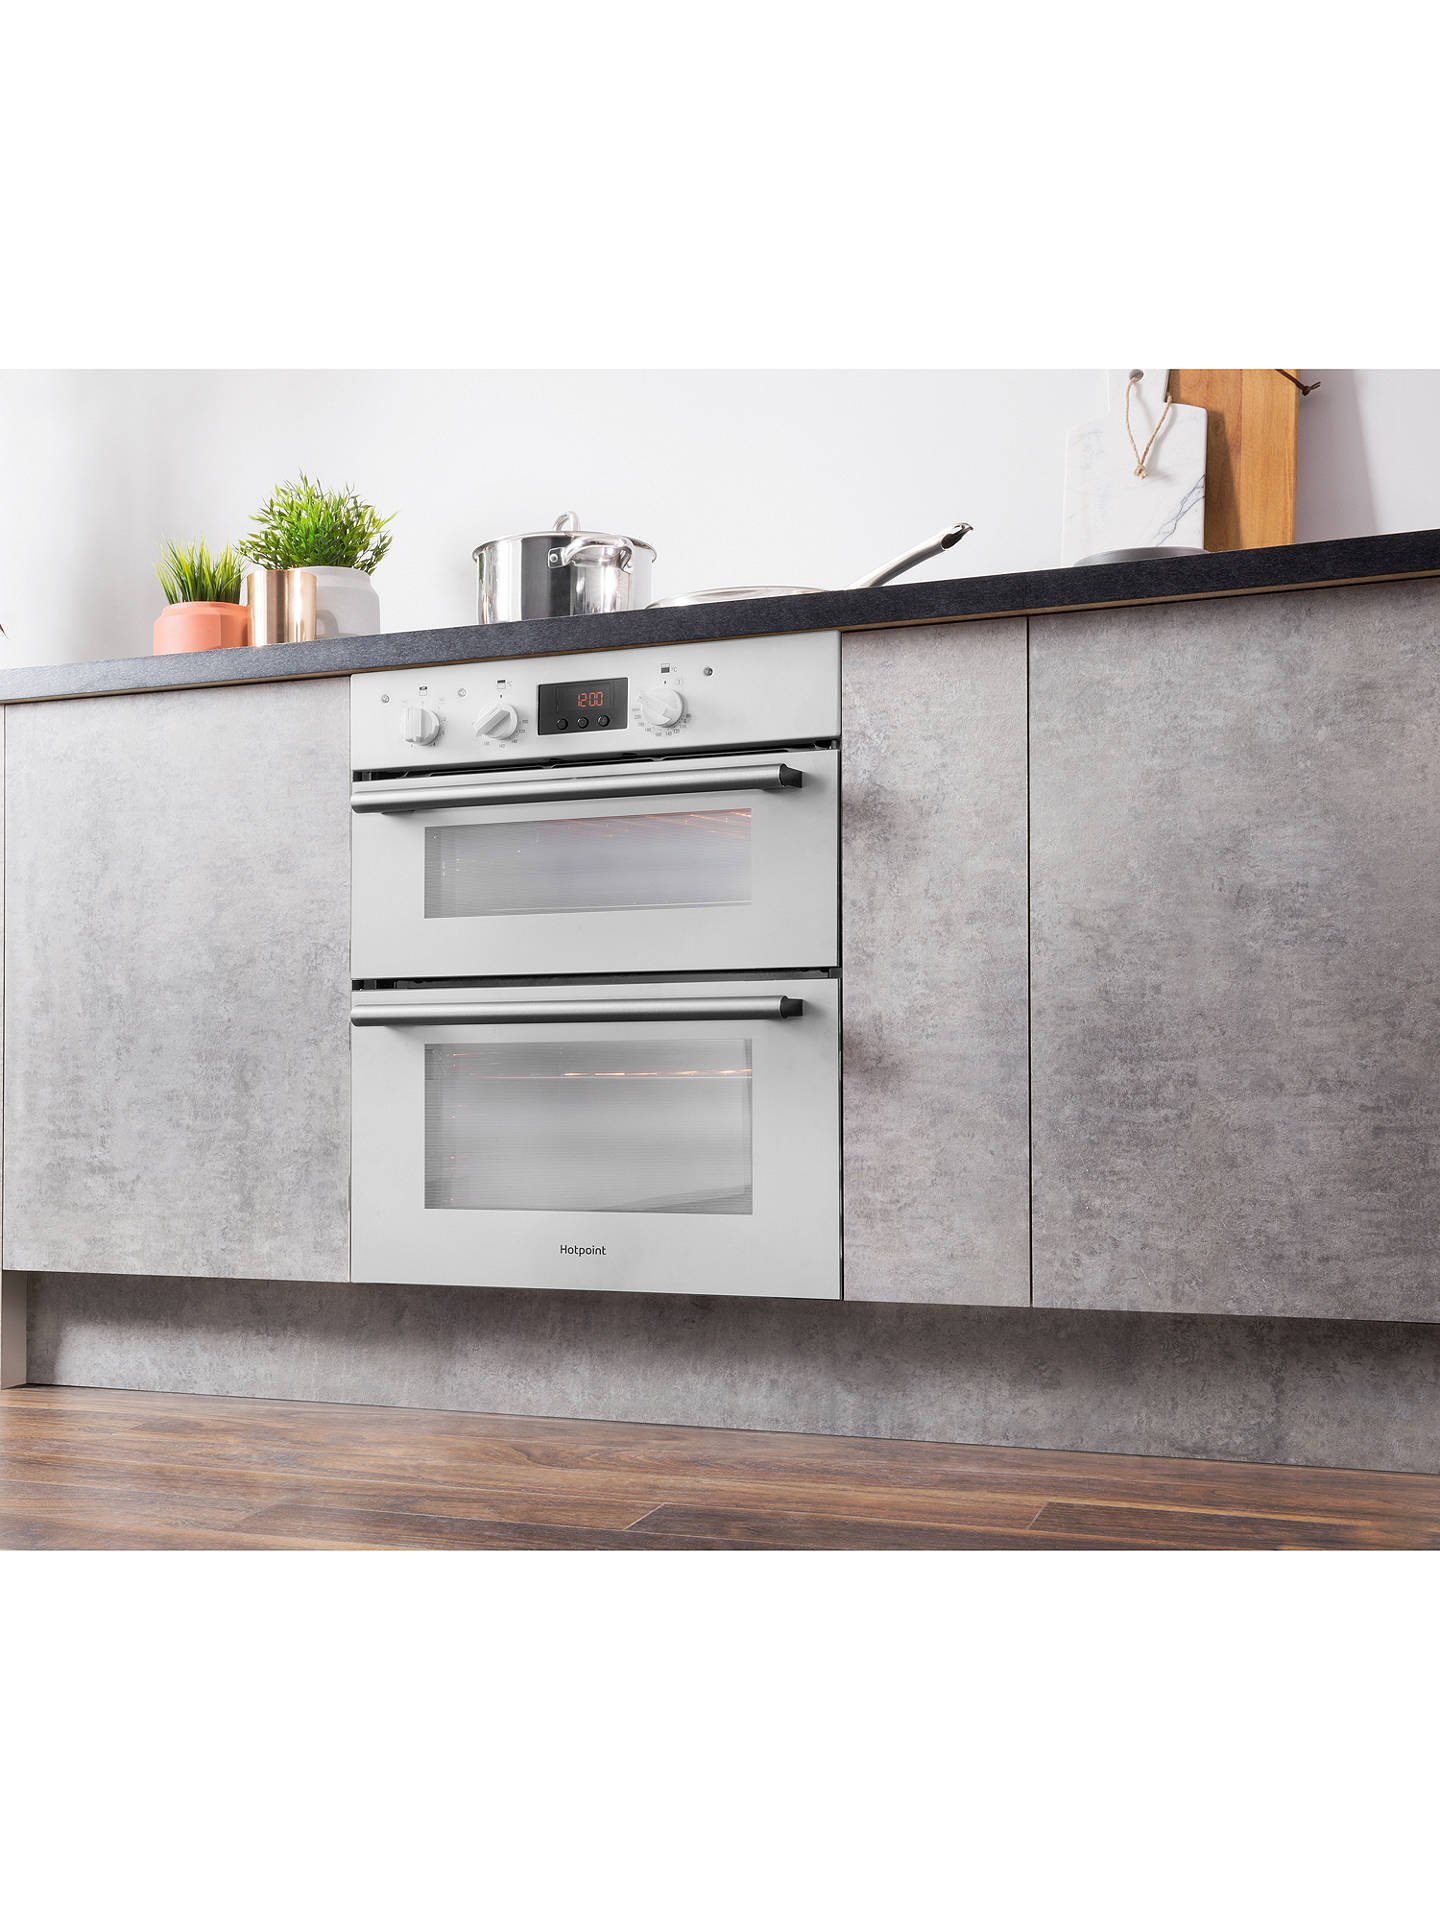 Hotpoint Du2540 Class 2 Built Under Electric Double Oven